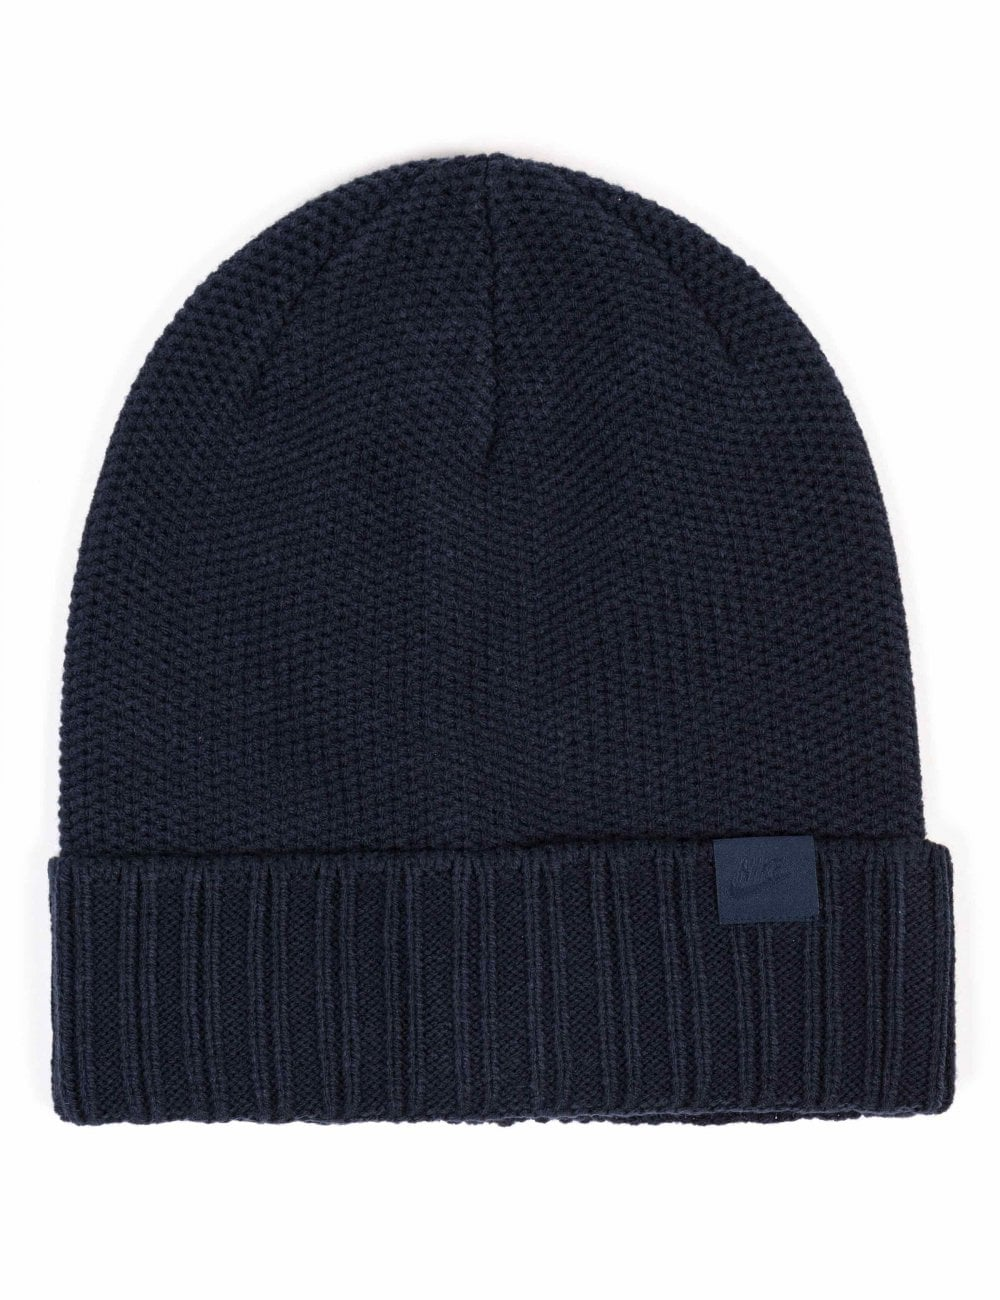 new product d09fd b1d1d promo code for nike nsw stripe beanie a5053 5fd45  shop nsw honeycomb beanie  hat obsidian 36778 ce0f4